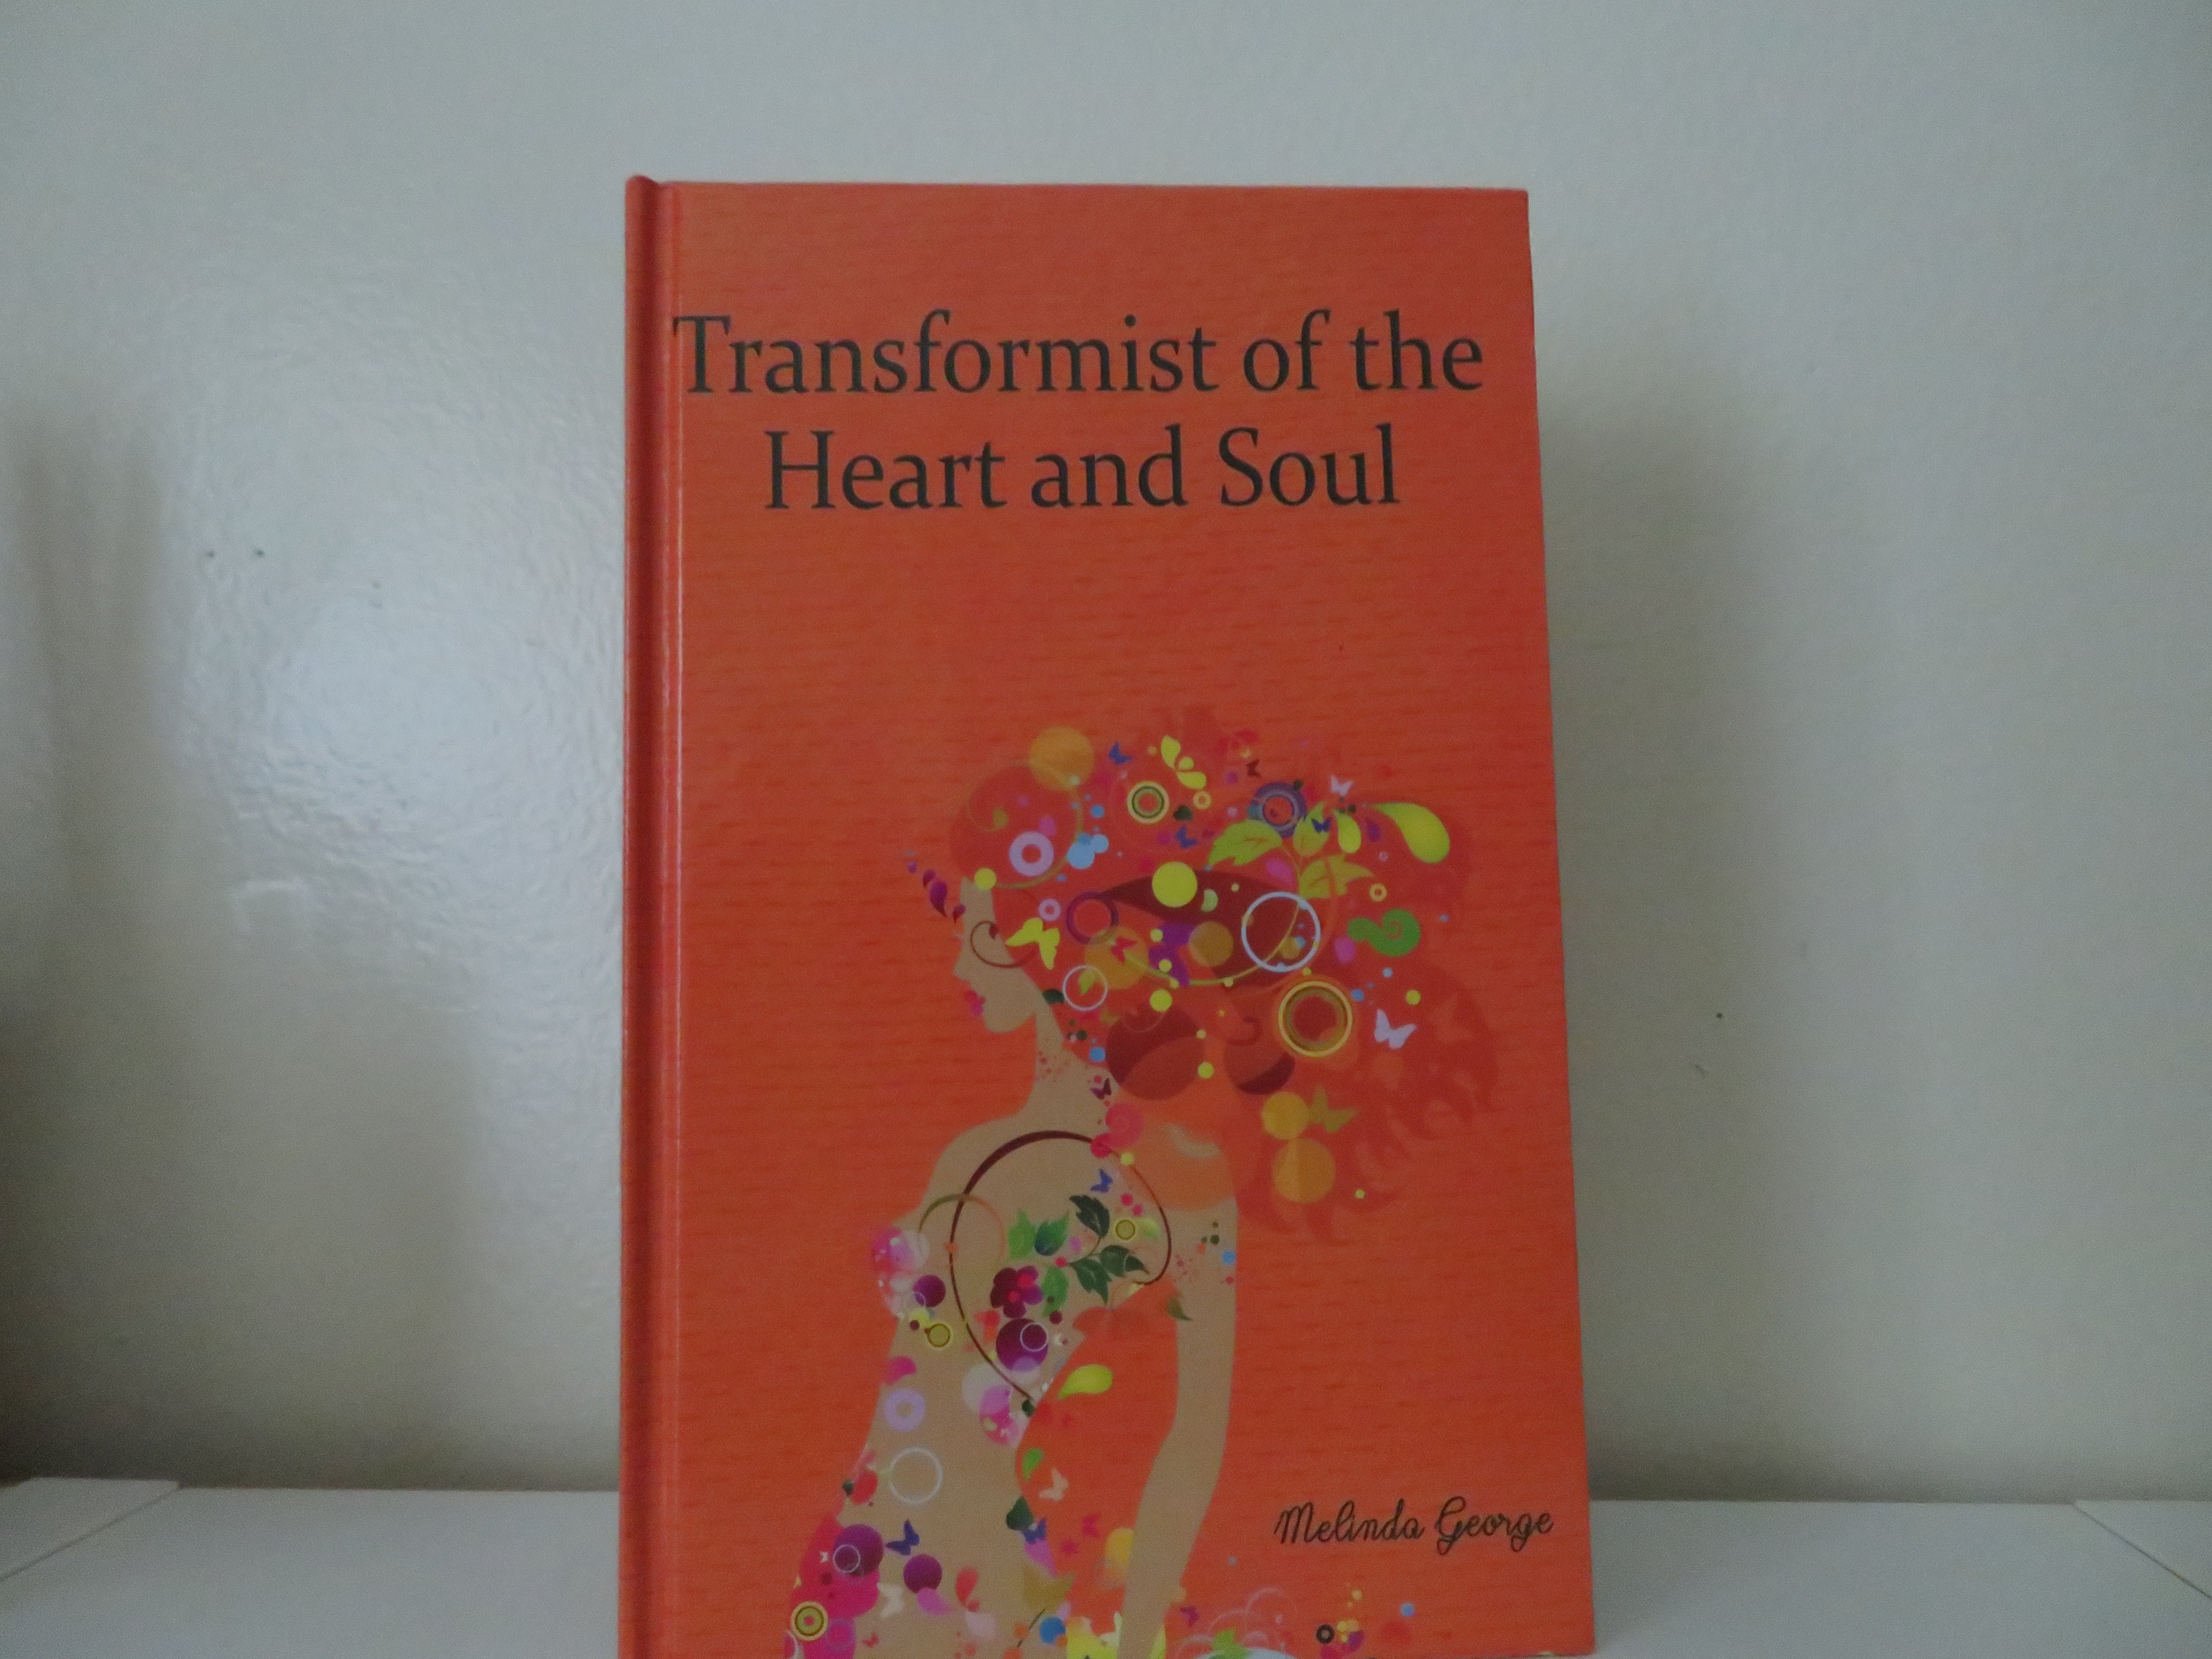 Transformist of the Heart and Soul